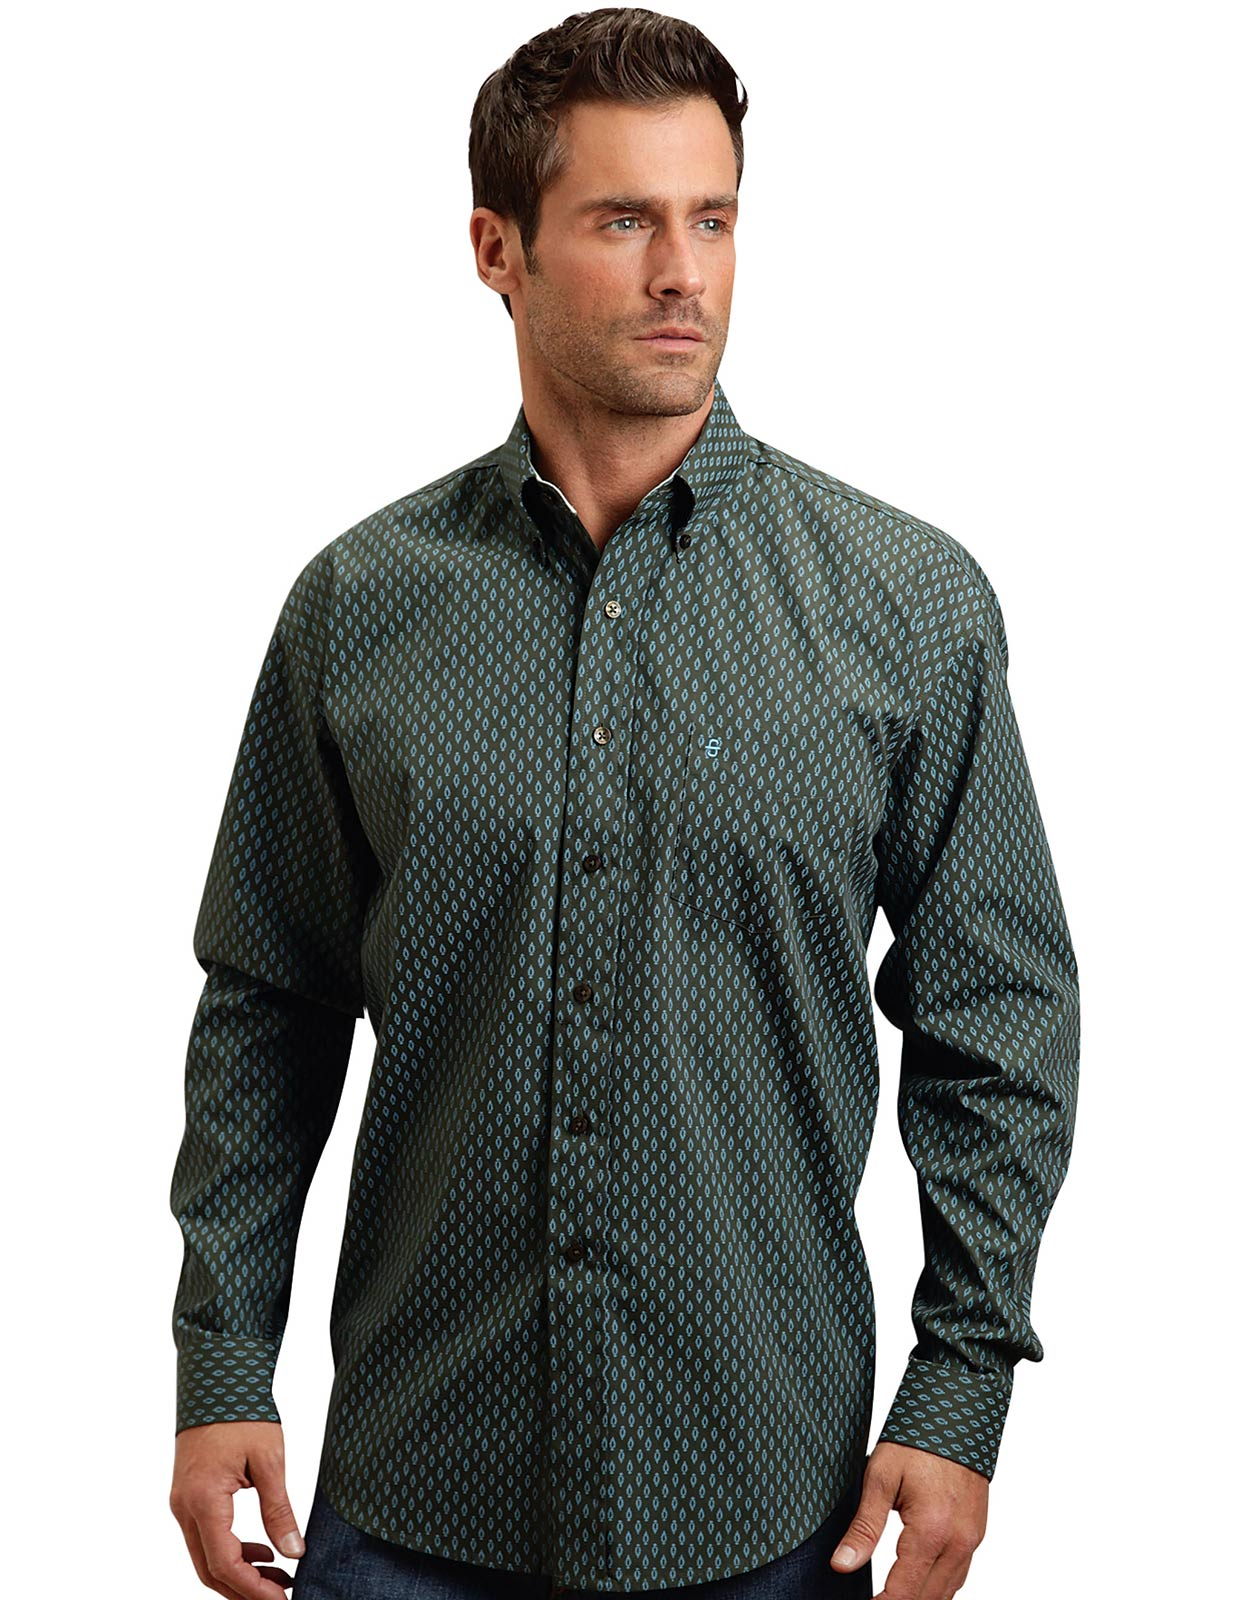 Stetson men 39 s long sleeve print button down shirt green for Mens long sleeve button down shirts